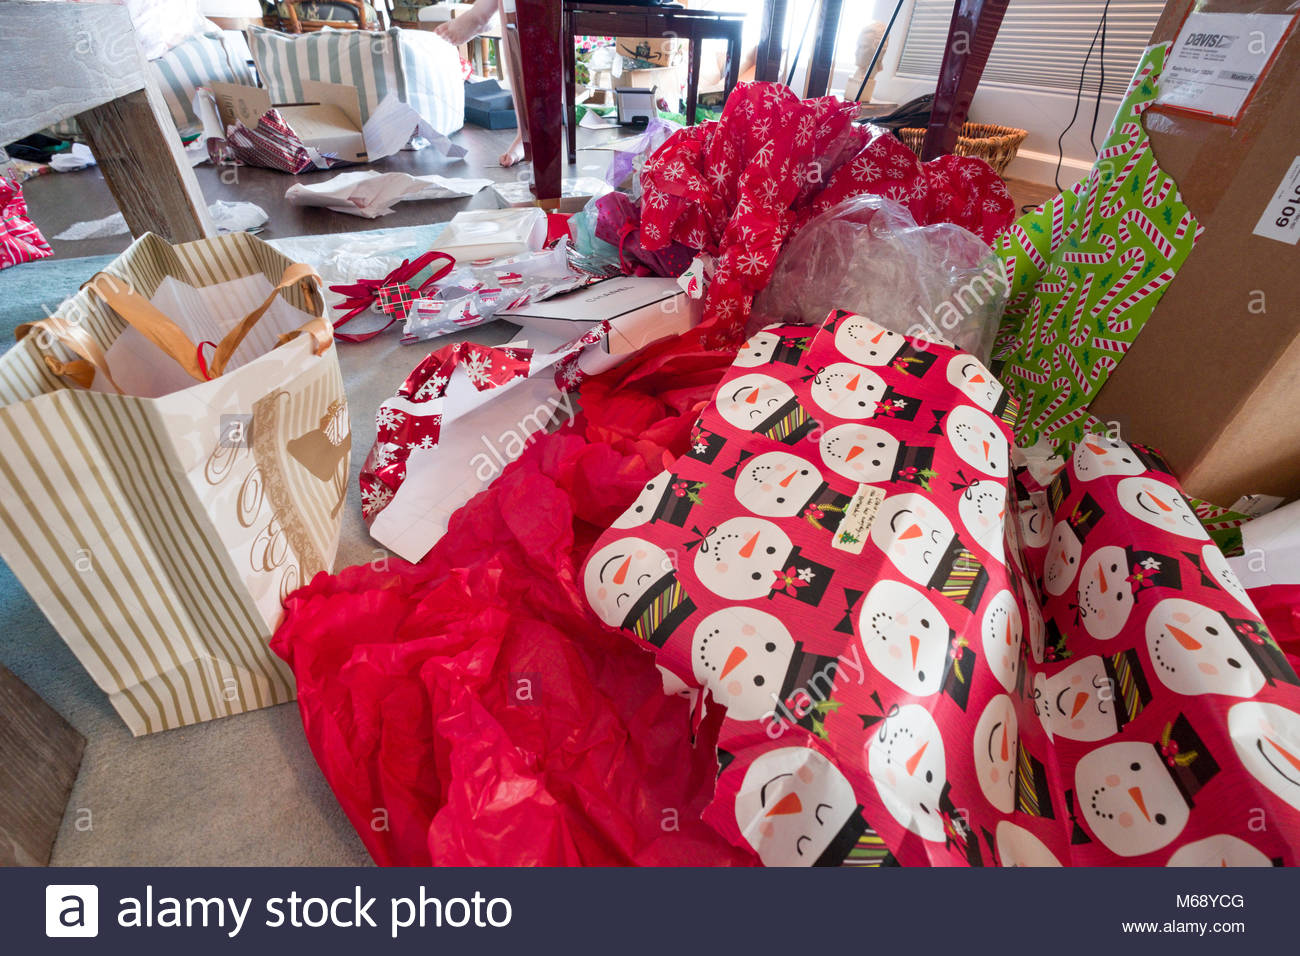 piles-of-discarded-wrapping-paper-and-ca